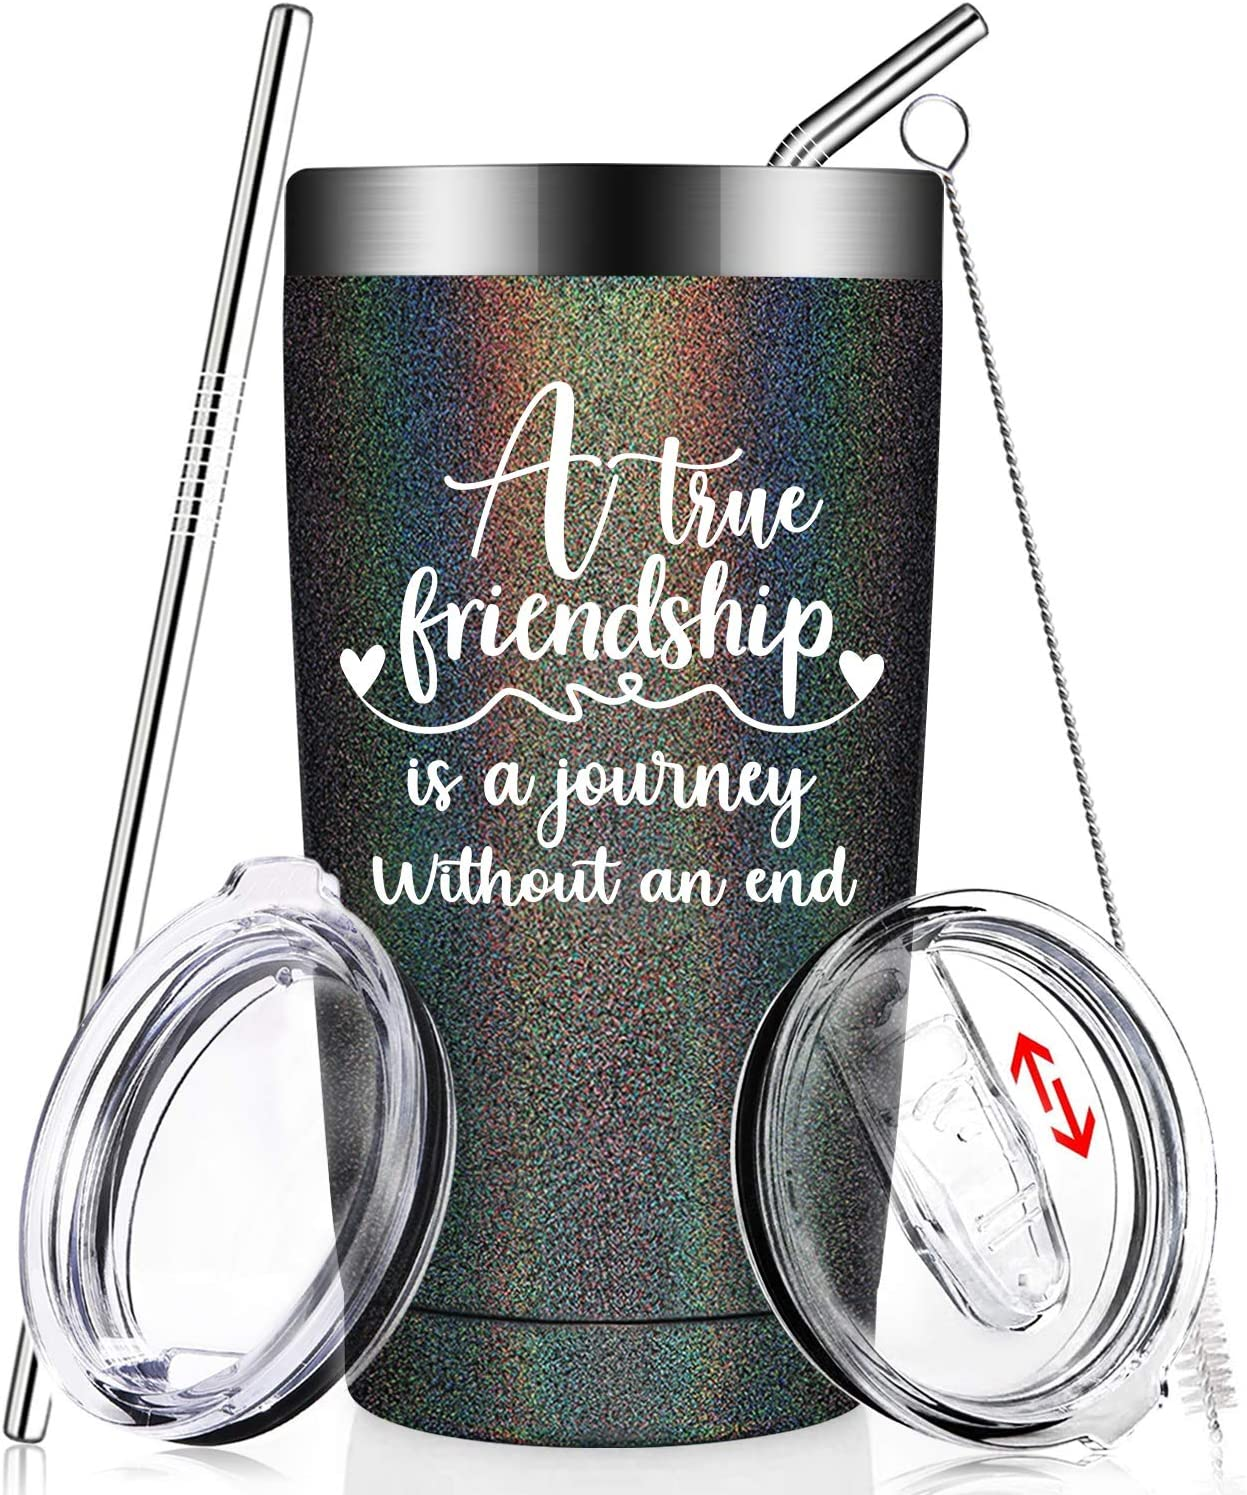 Best Friend Friendship Gifts for Women Oakland Mall - fo Max 49% OFF Birthday Funny